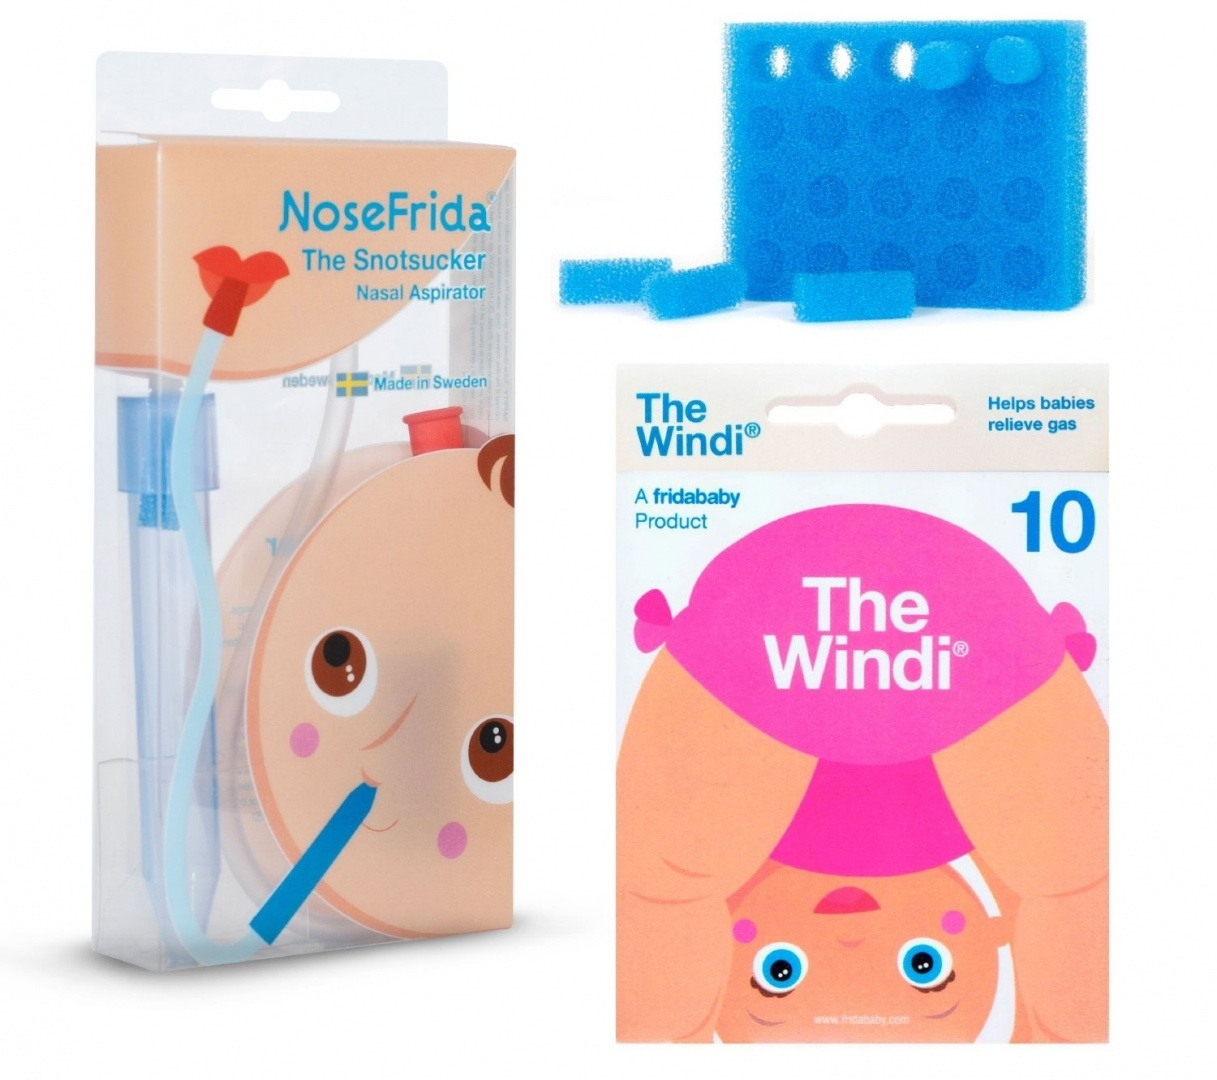 Healifty 100PCS Nasal Aspirator Hygiene Filters Replacement for NoseFrida Nose Frida Aspirator Filters Baby Care Accessories